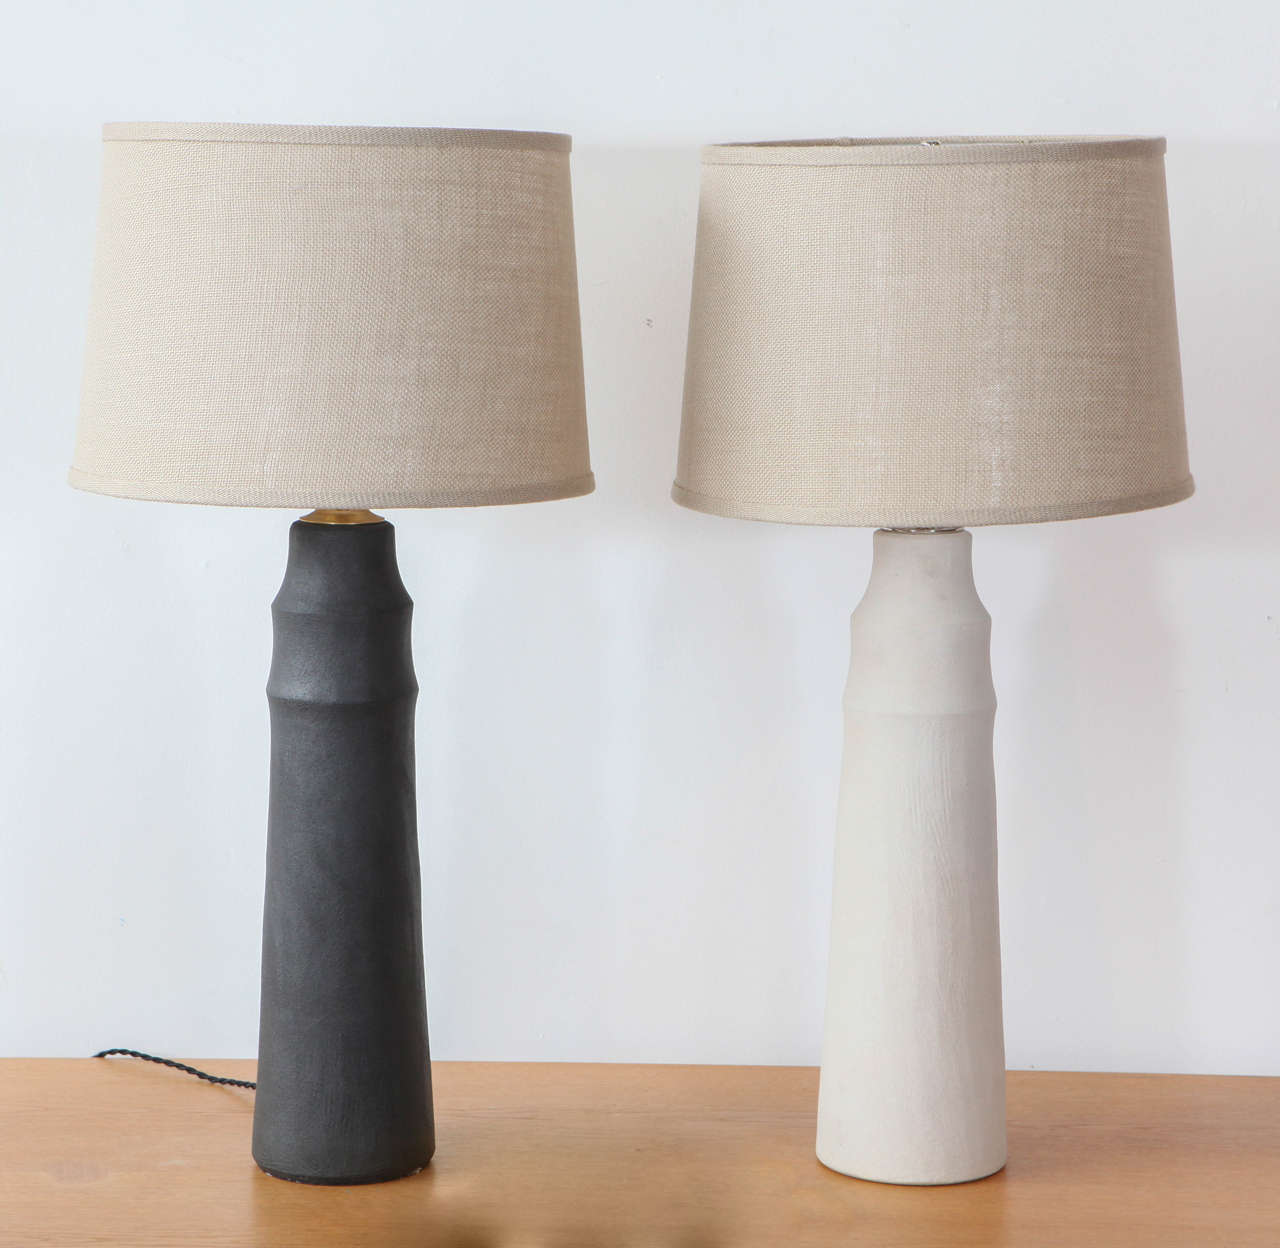 Mirena Kim Handmade Ceramic Table Lamps 2